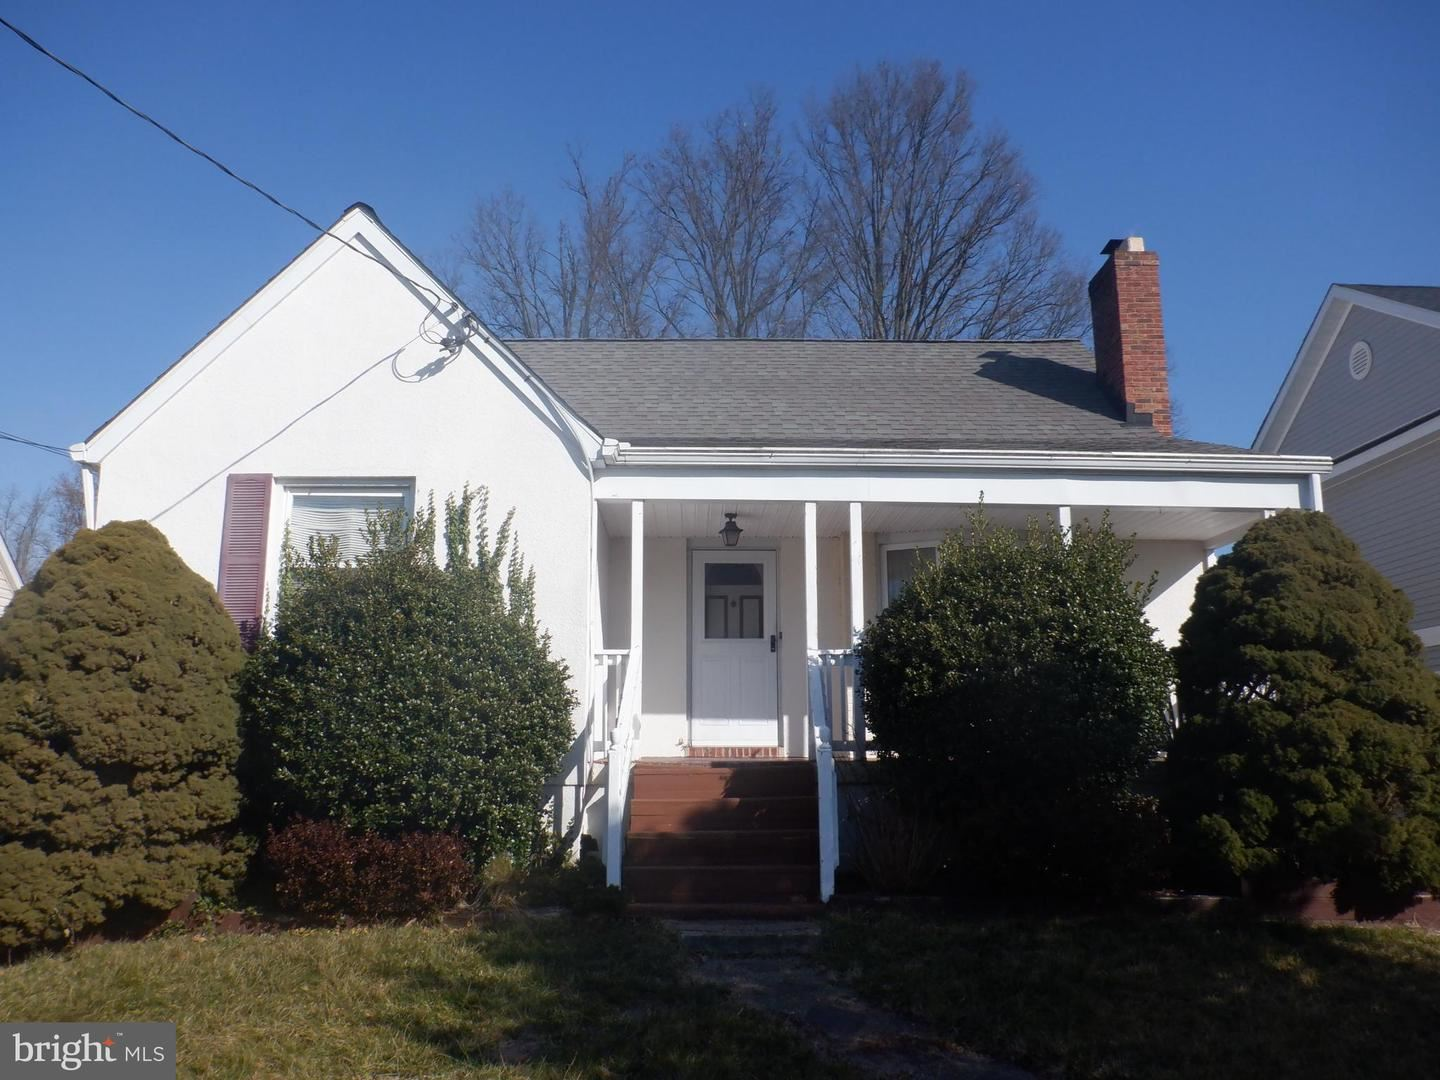 4112 KLAUSMIER AVE, Nottingham, MD 21236 - MLS#: MDBC516314